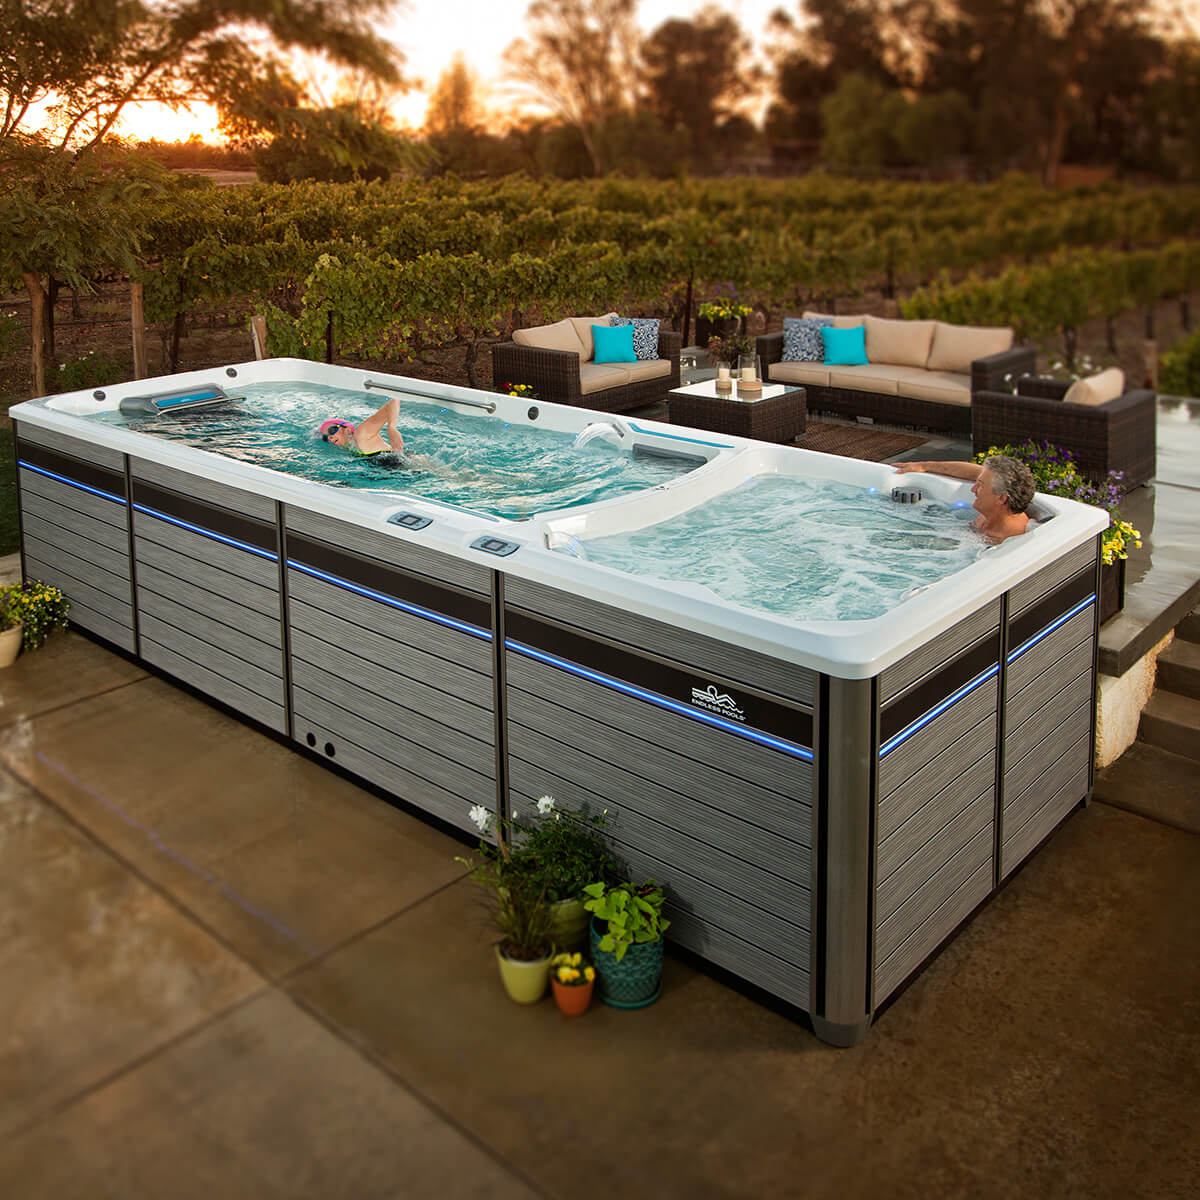 Jacuzzi Endless Pool E2000 Endless Pools Fitness Systems Branson Hot Tubs